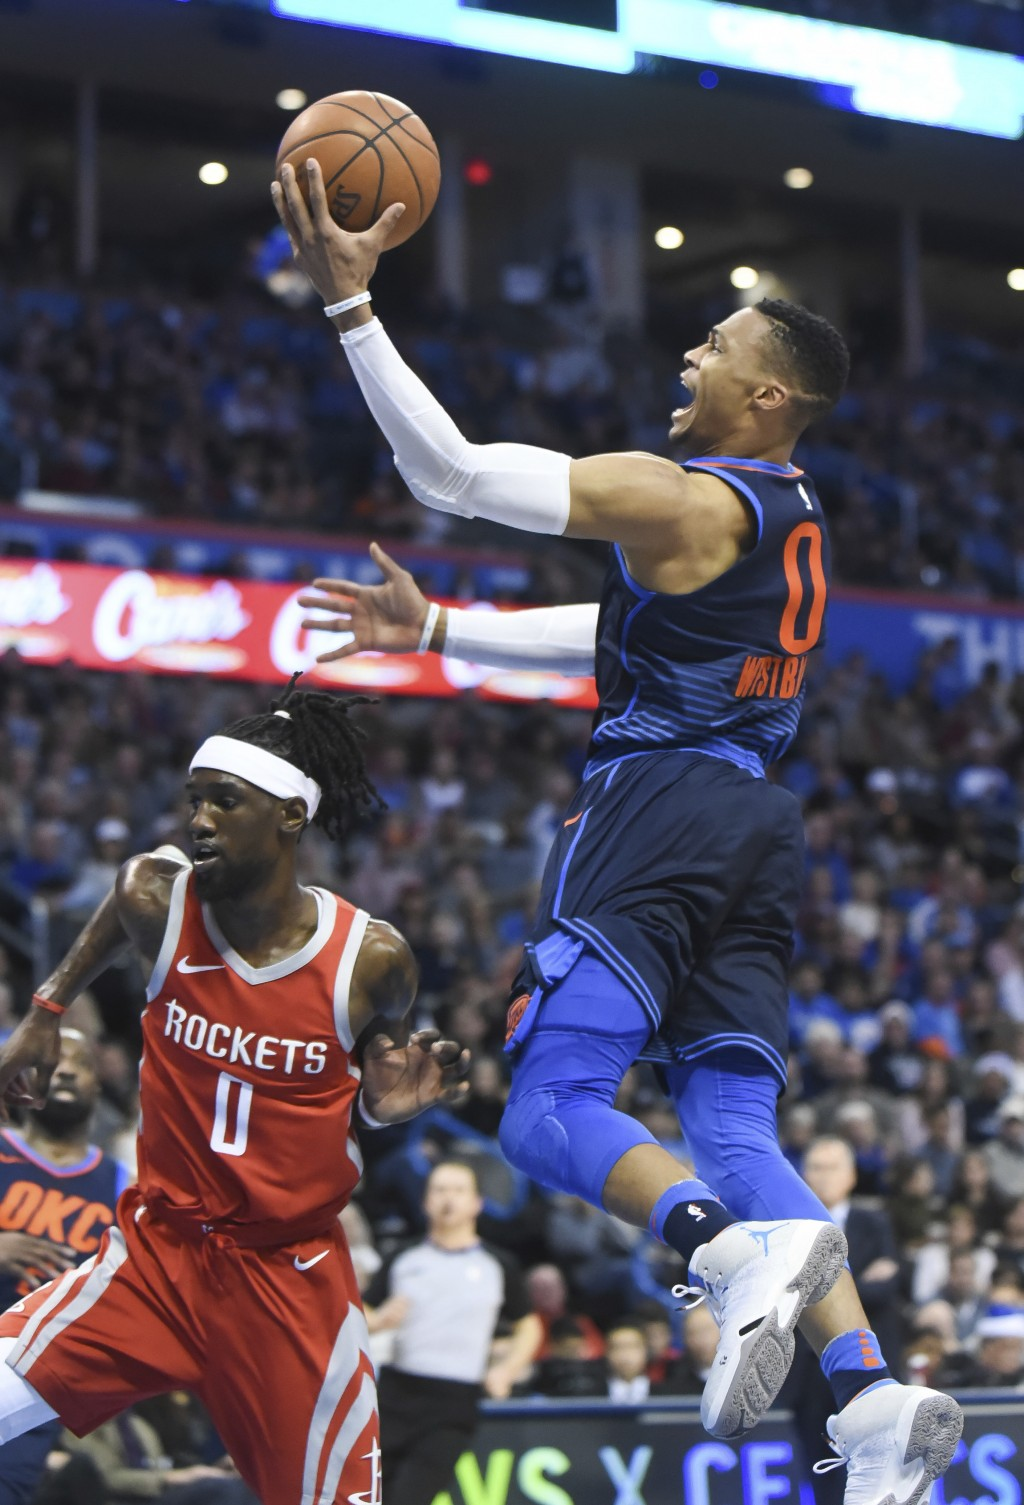 Oklahoma City Thunder's Russell Westbrook goes up for a shot over Houston Rockets' Briante Weber in the second half of an NBA basketball game in Oklah...